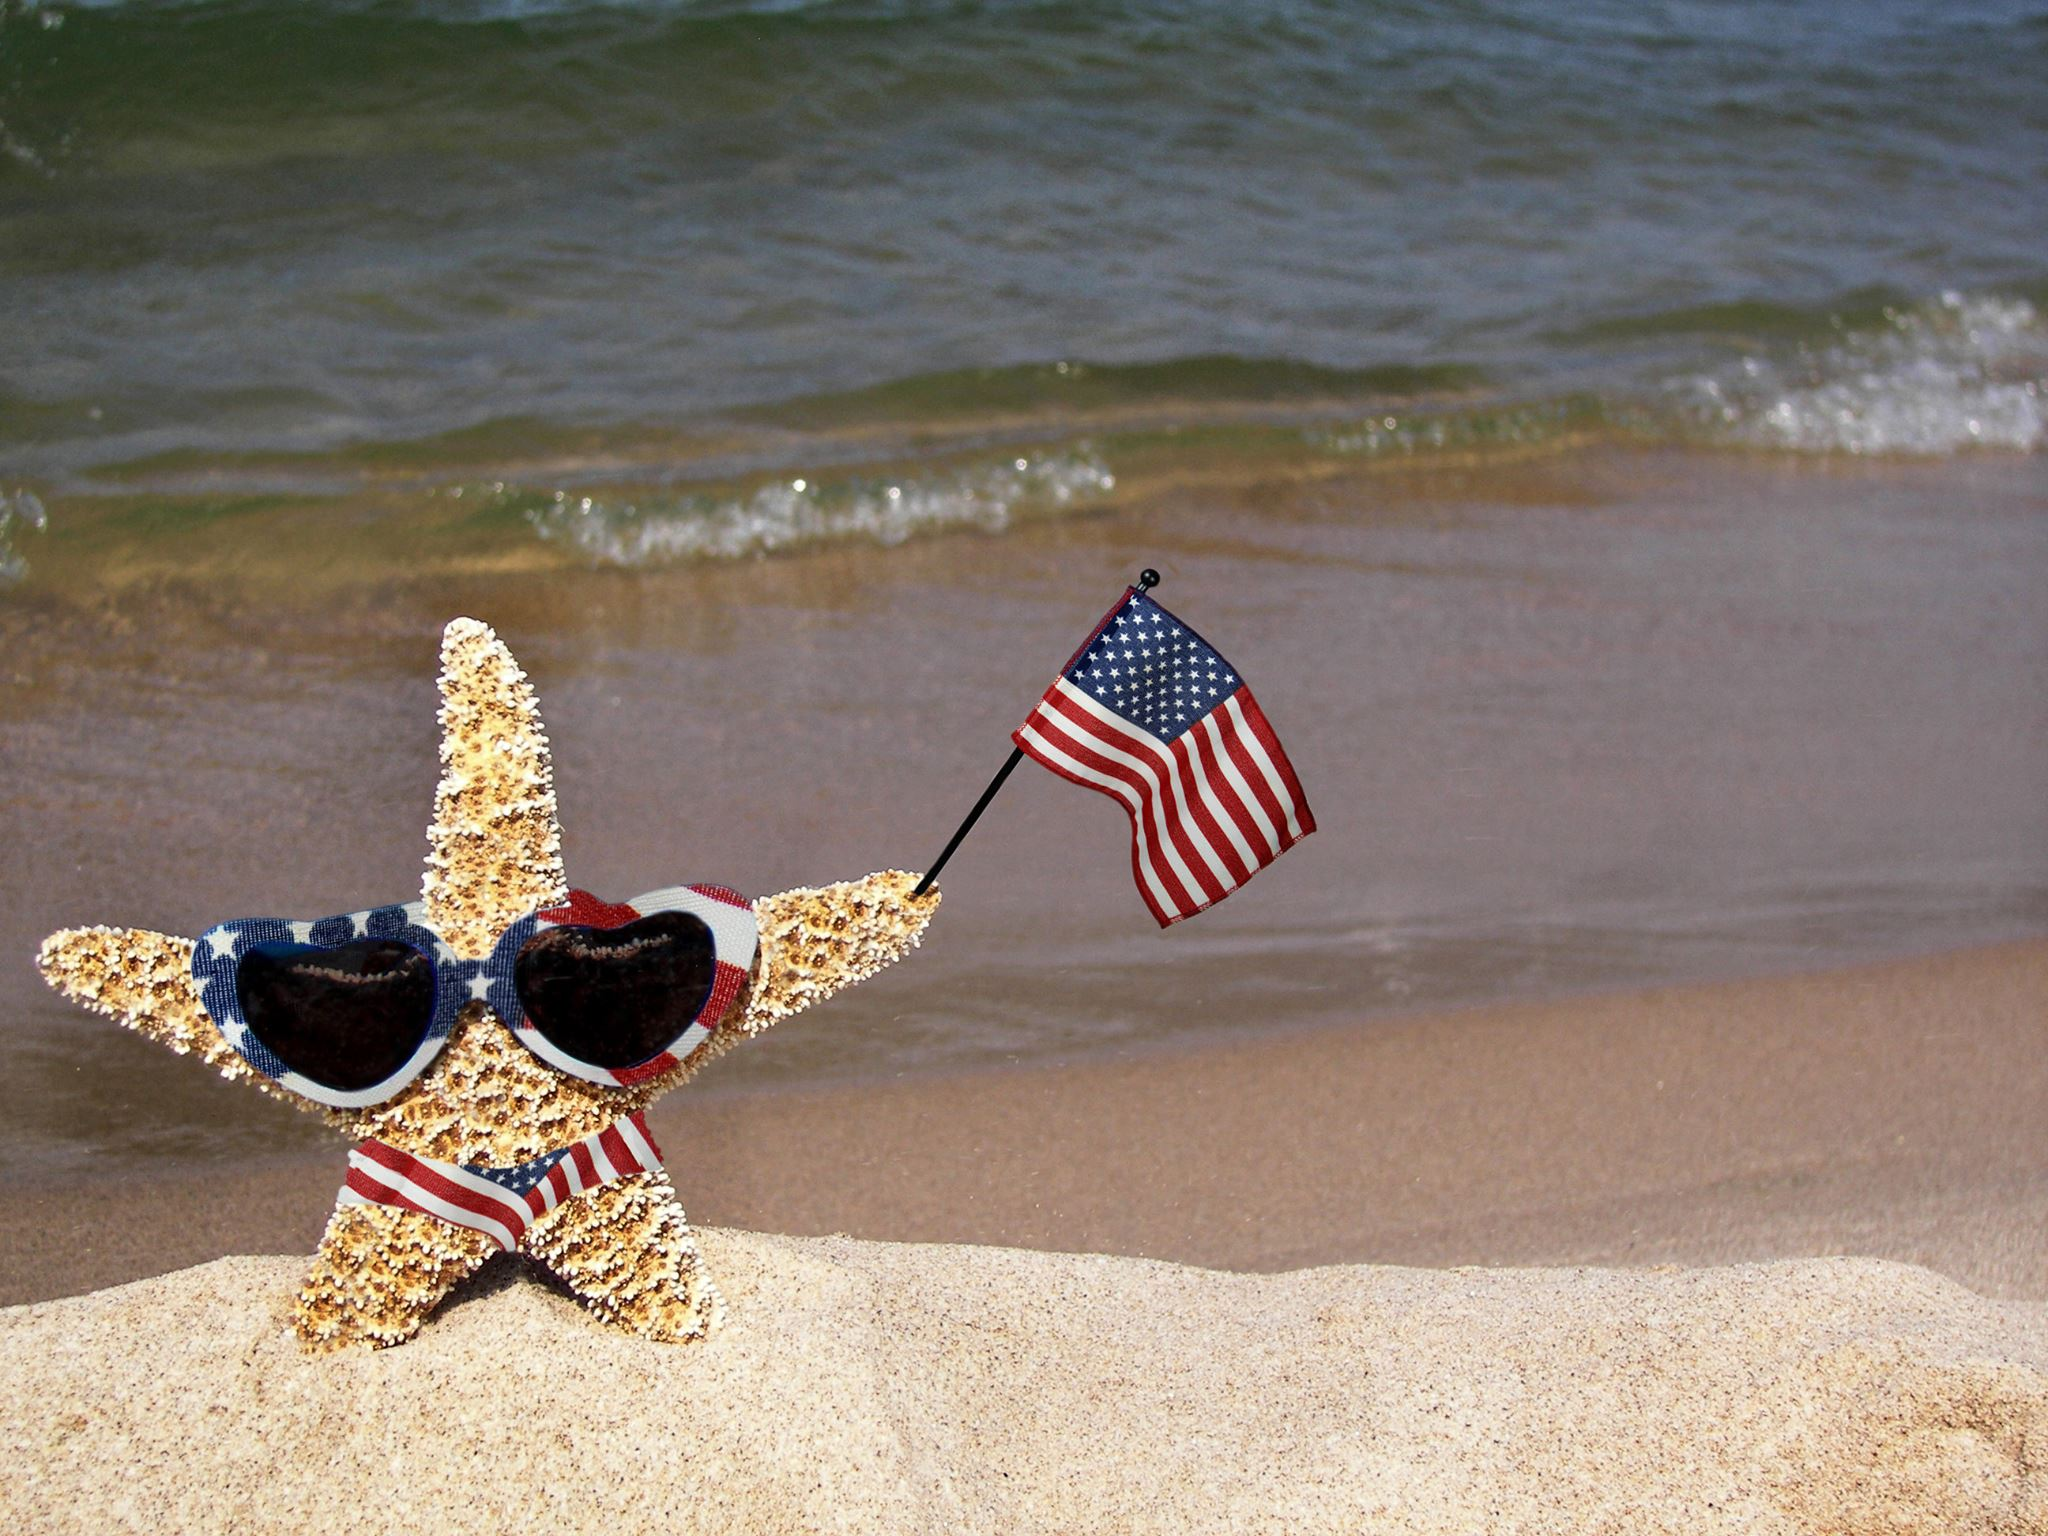 Meaning of fourth - Wishing Everyone And A Safe And Happy Fourth Of July I Hope That You Have Time To Draw Close To Family And Friends And To Reflect On The Rich Meaning Of